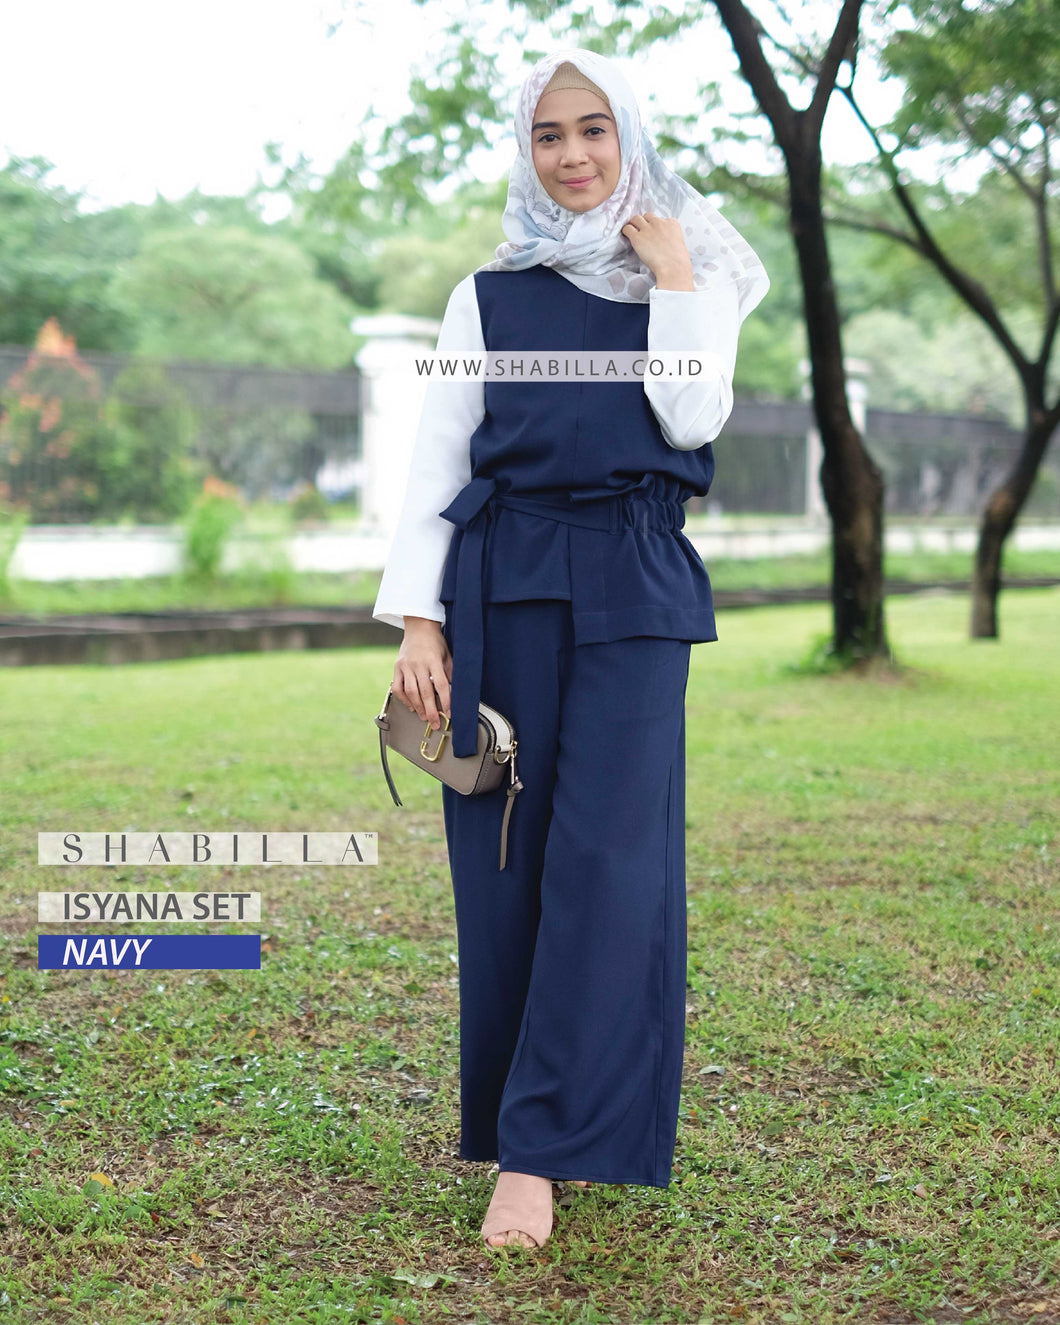 ISYANA SET - NAVY